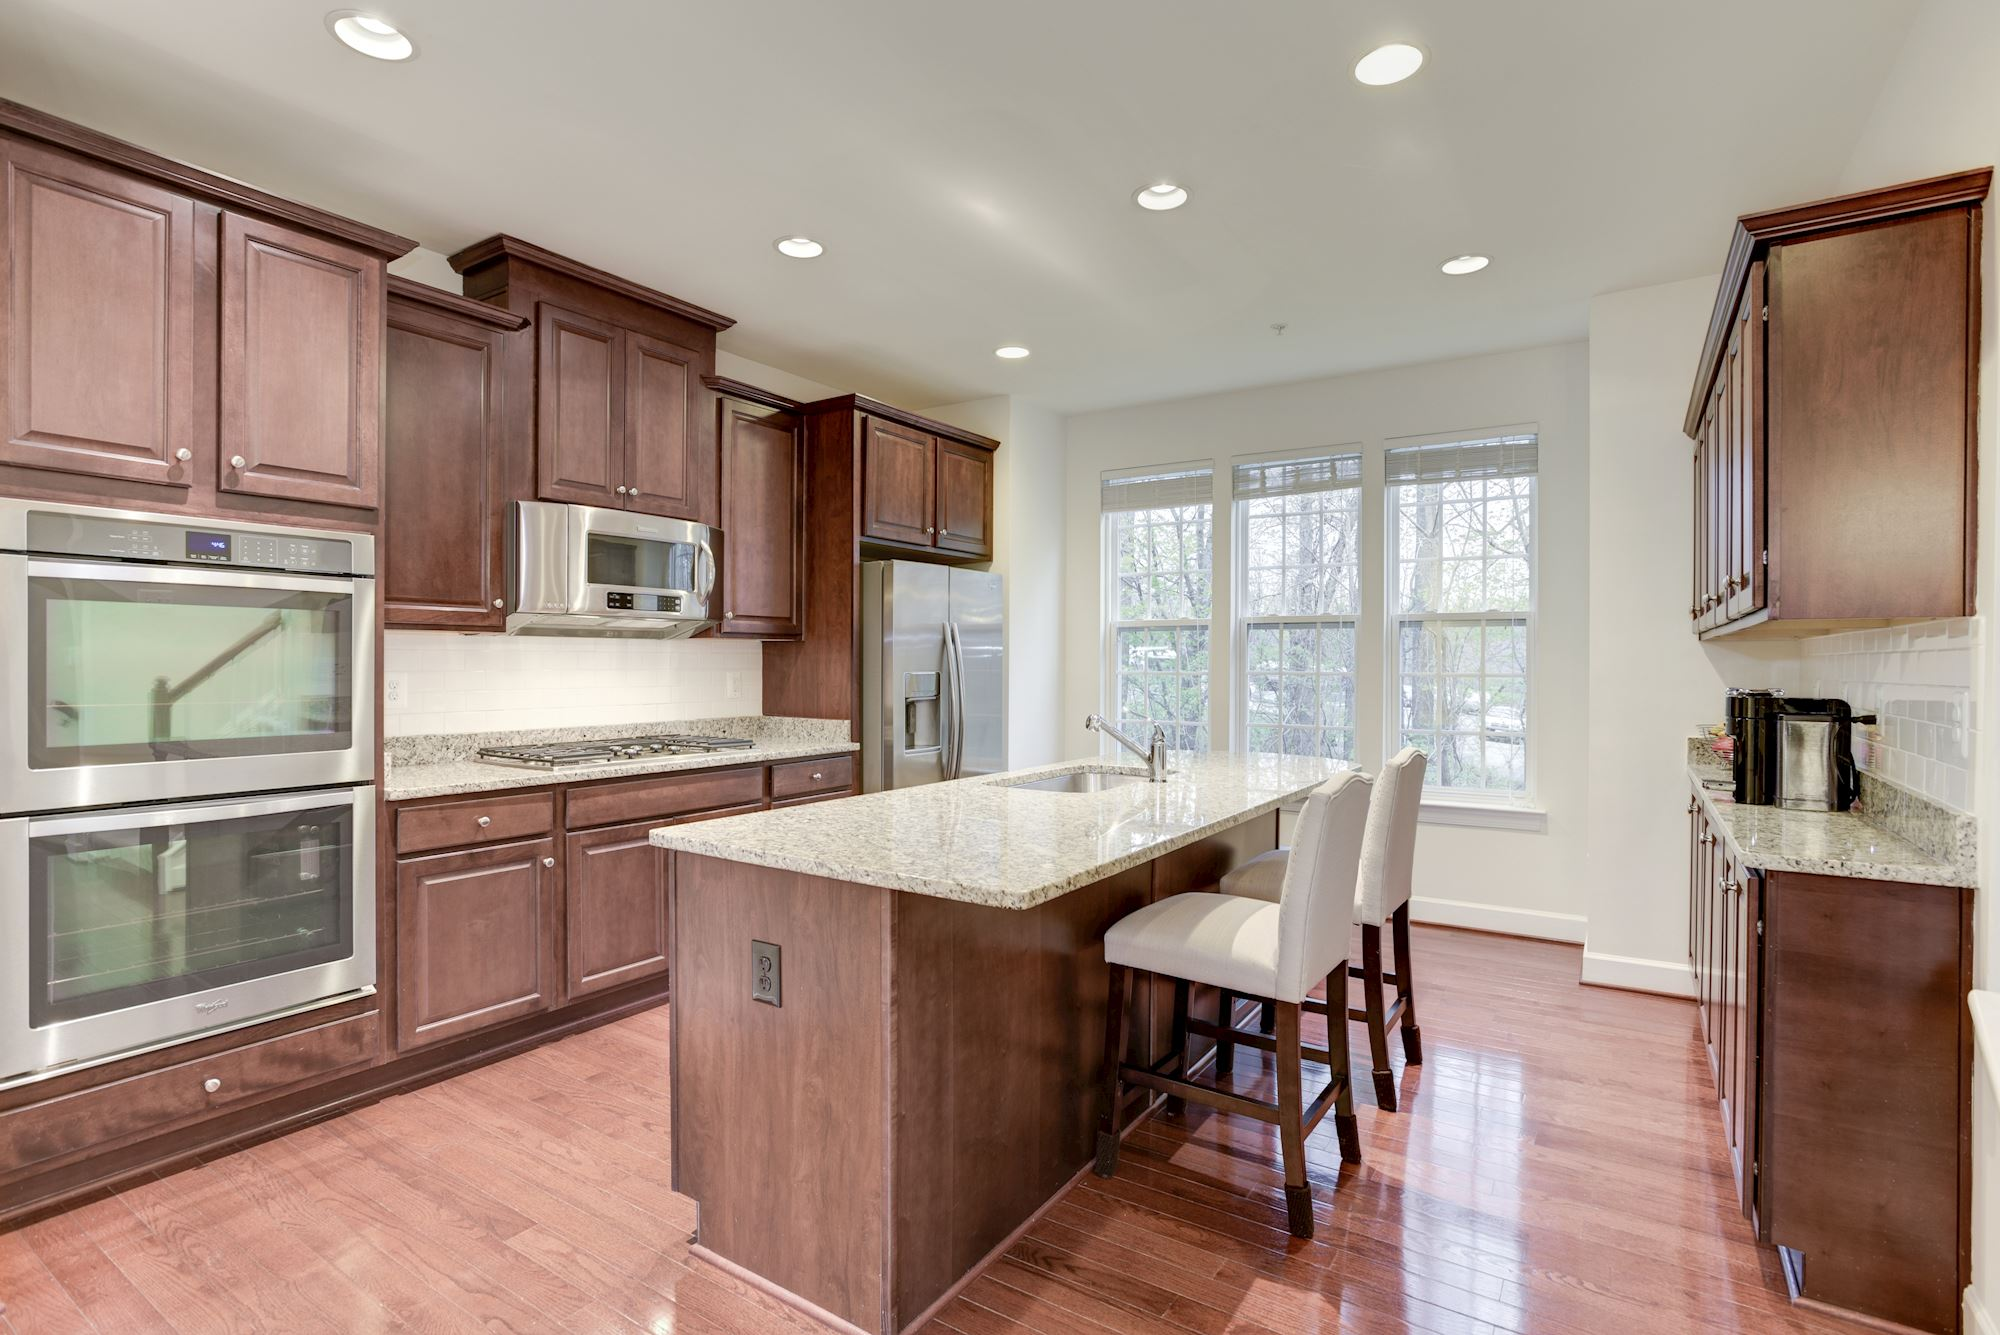 SOLD: Modern Stanley Martin Home in Downtown Fairfax